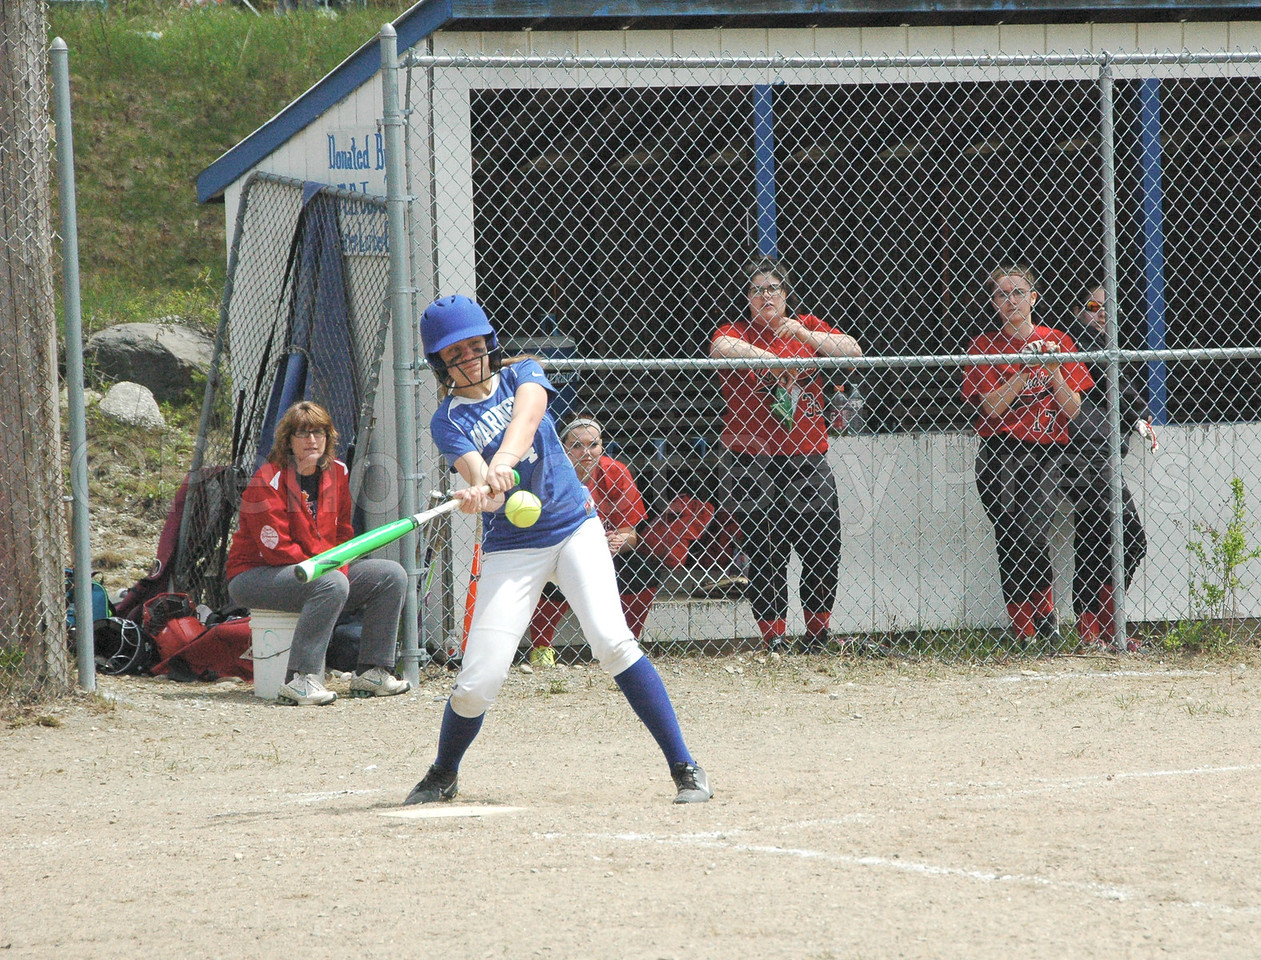 Katie Hutchinson tags a hit against Katahdin. Photo by Jack Scott